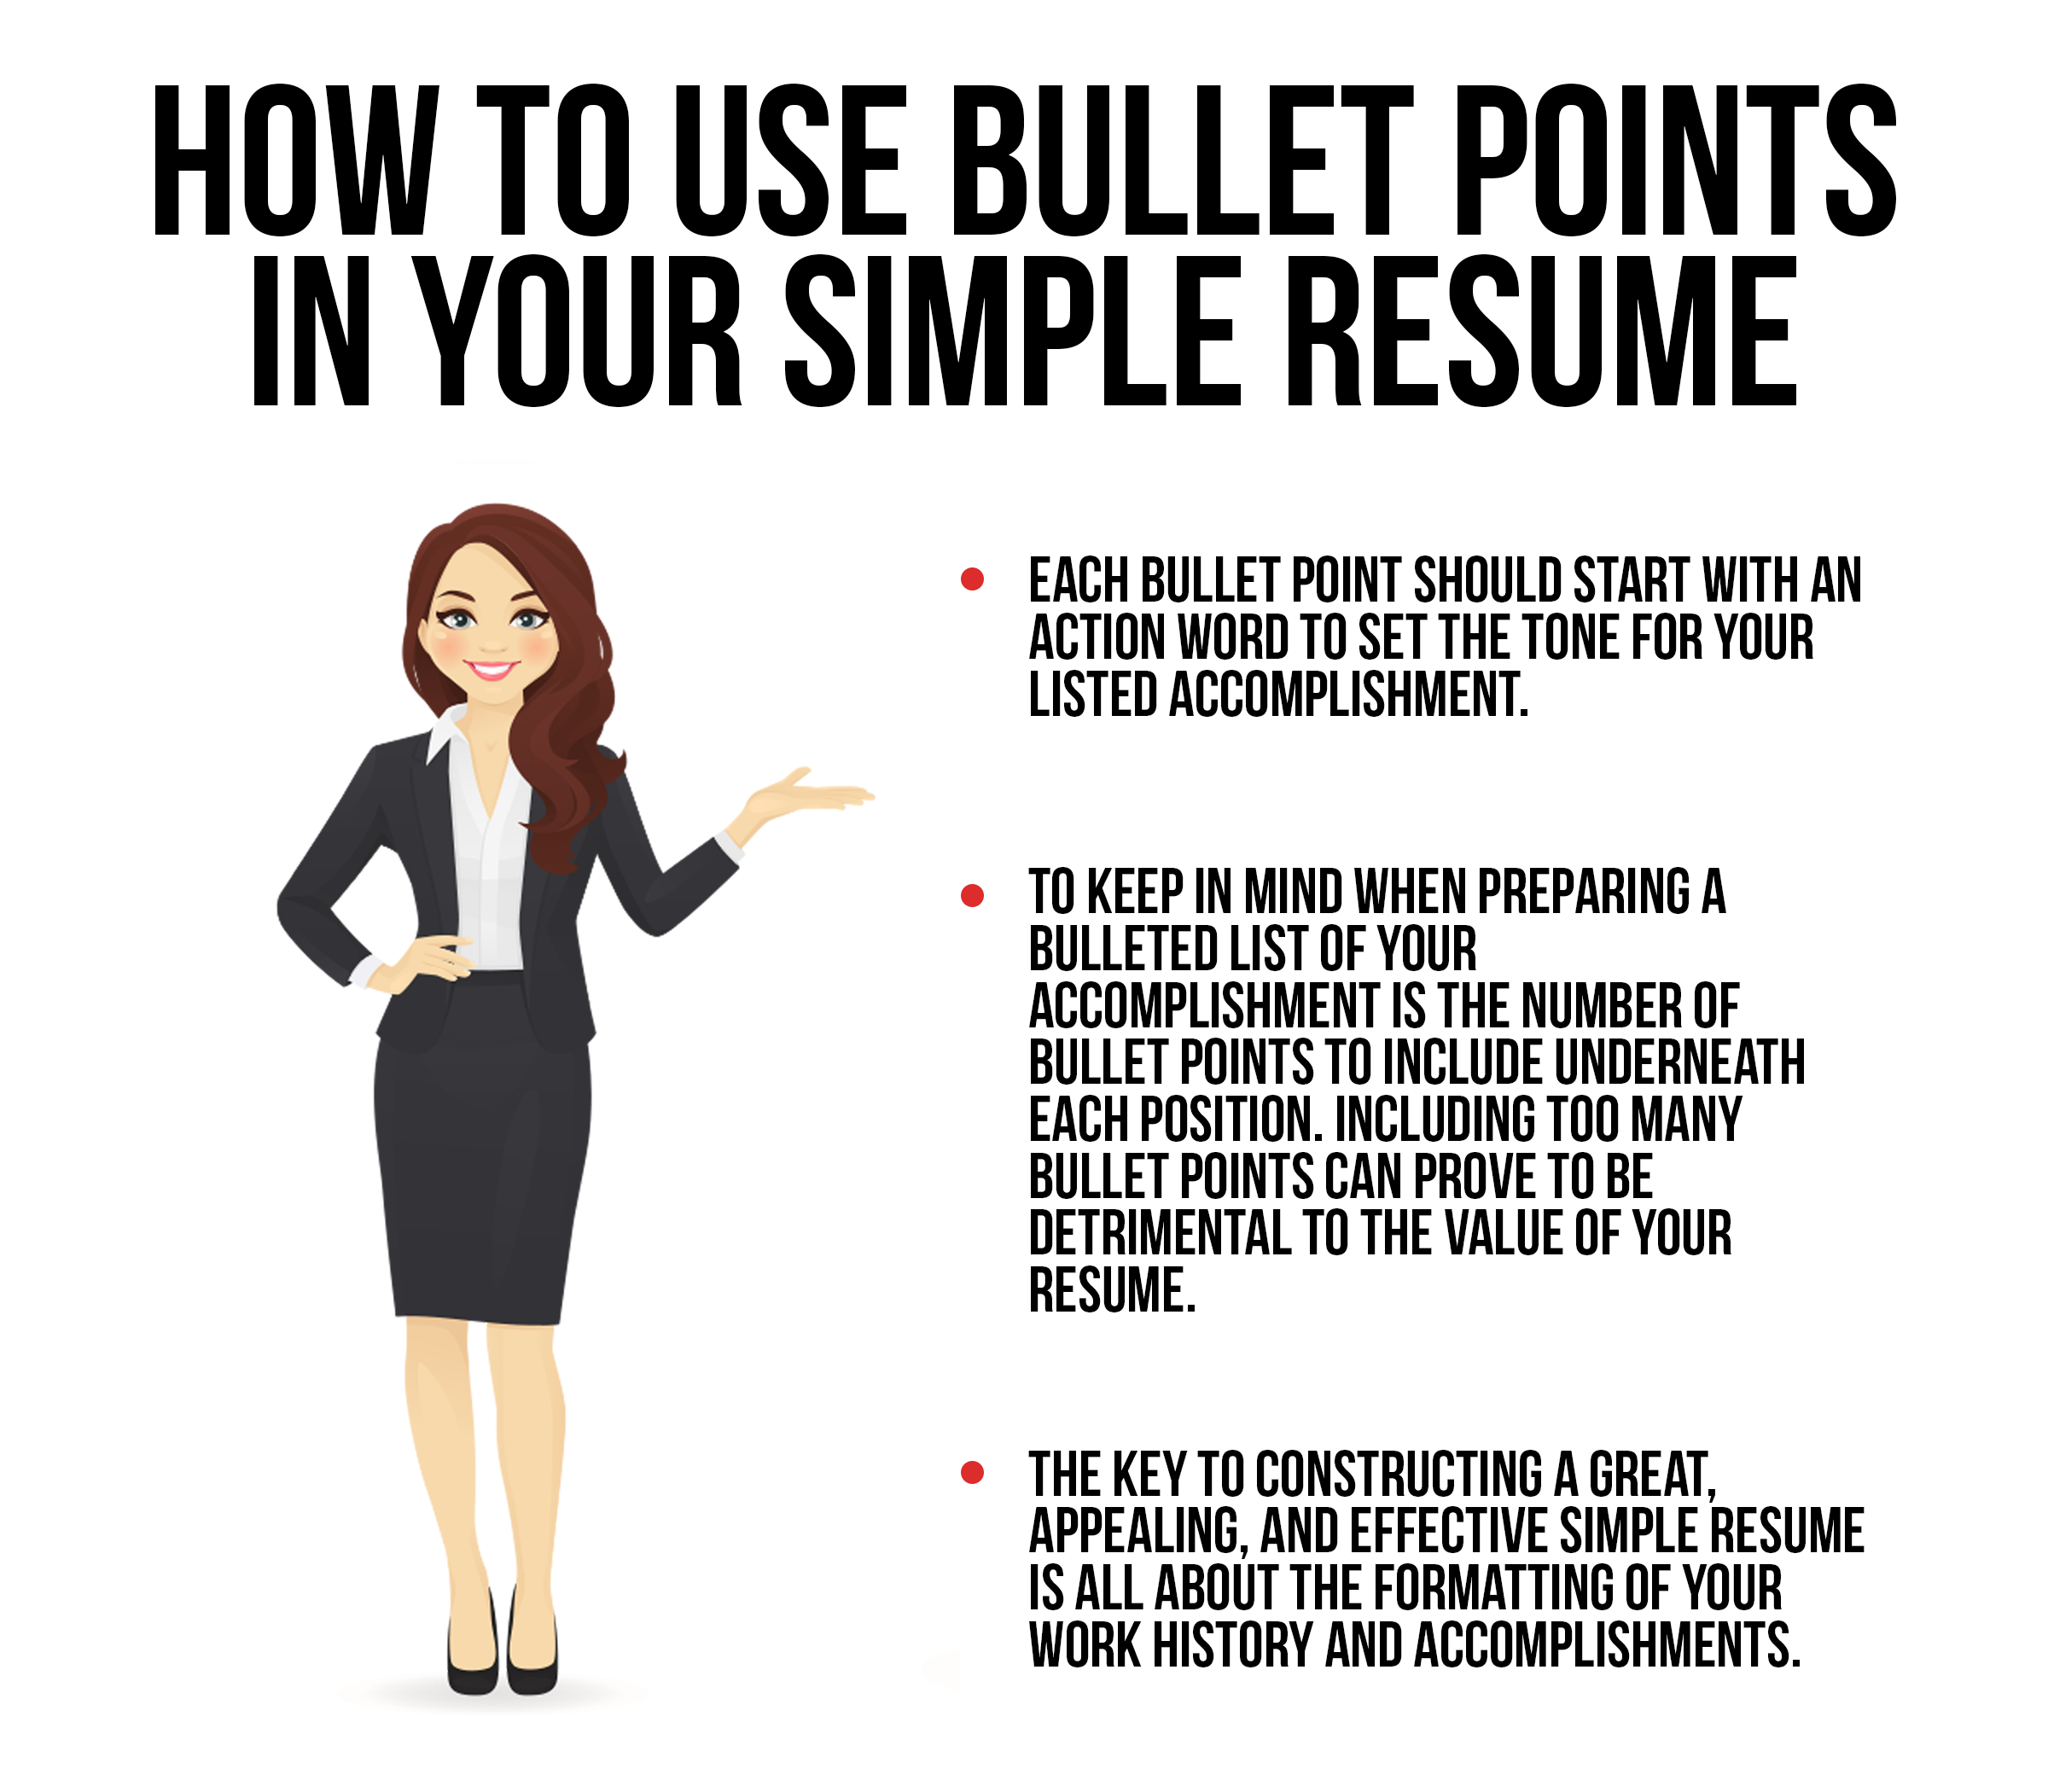 woman tells how bullet points should be formatted and used in a simple resume format